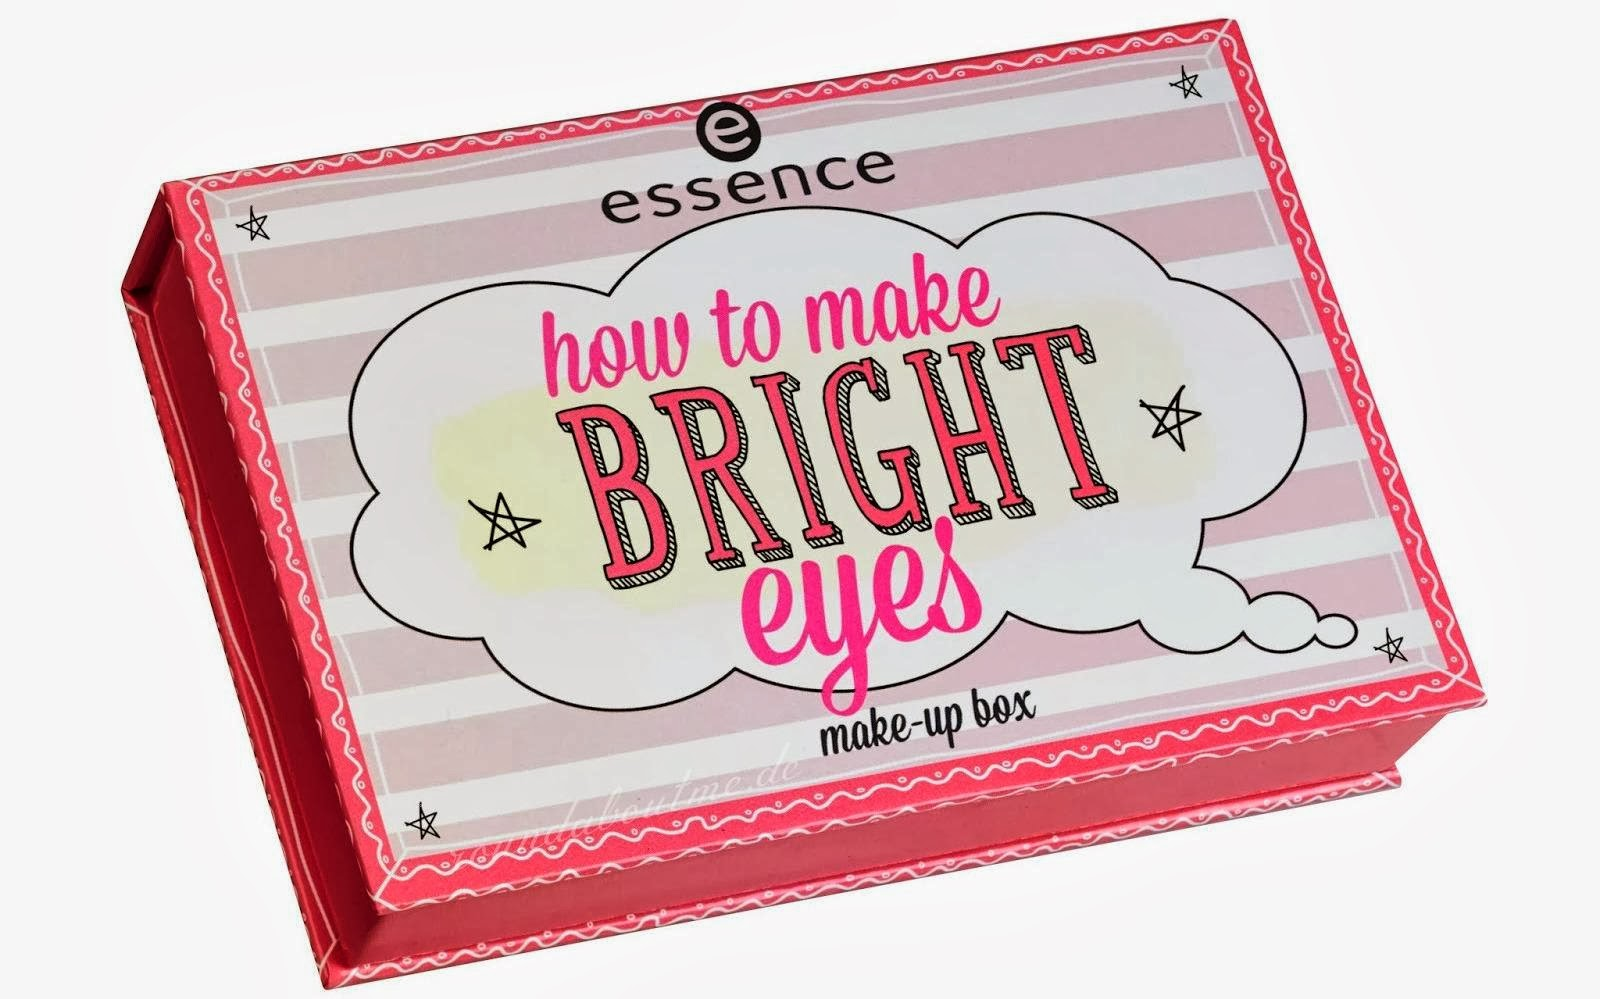 essence Bright Eyes Palette Spring 2014